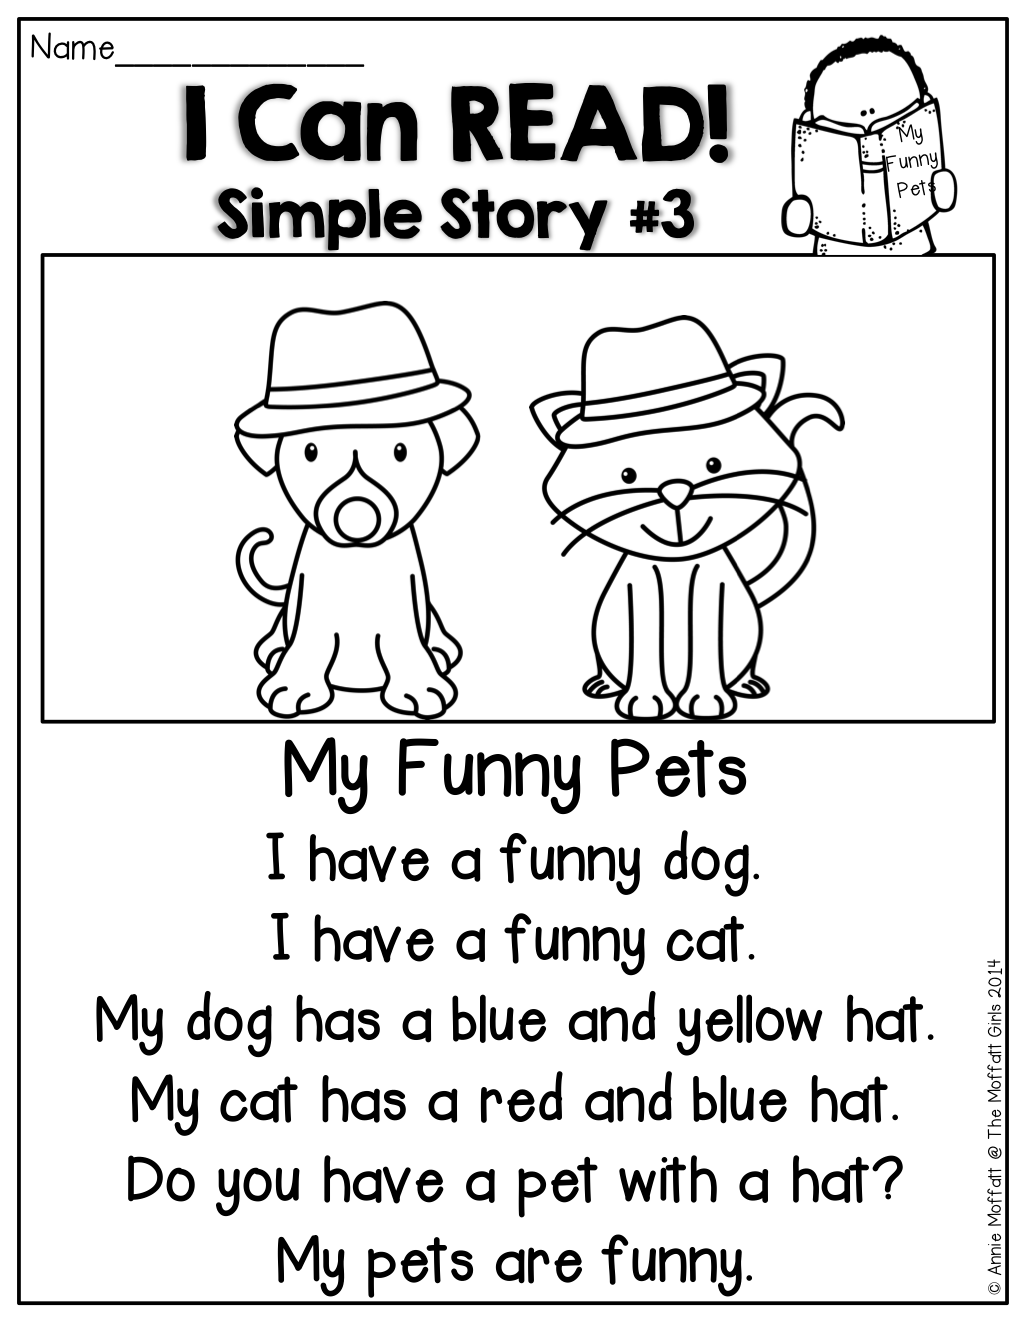 I Can Read Simple Stories Simple Stories Made Up Of Sight Words And Cvc Words To Help Build